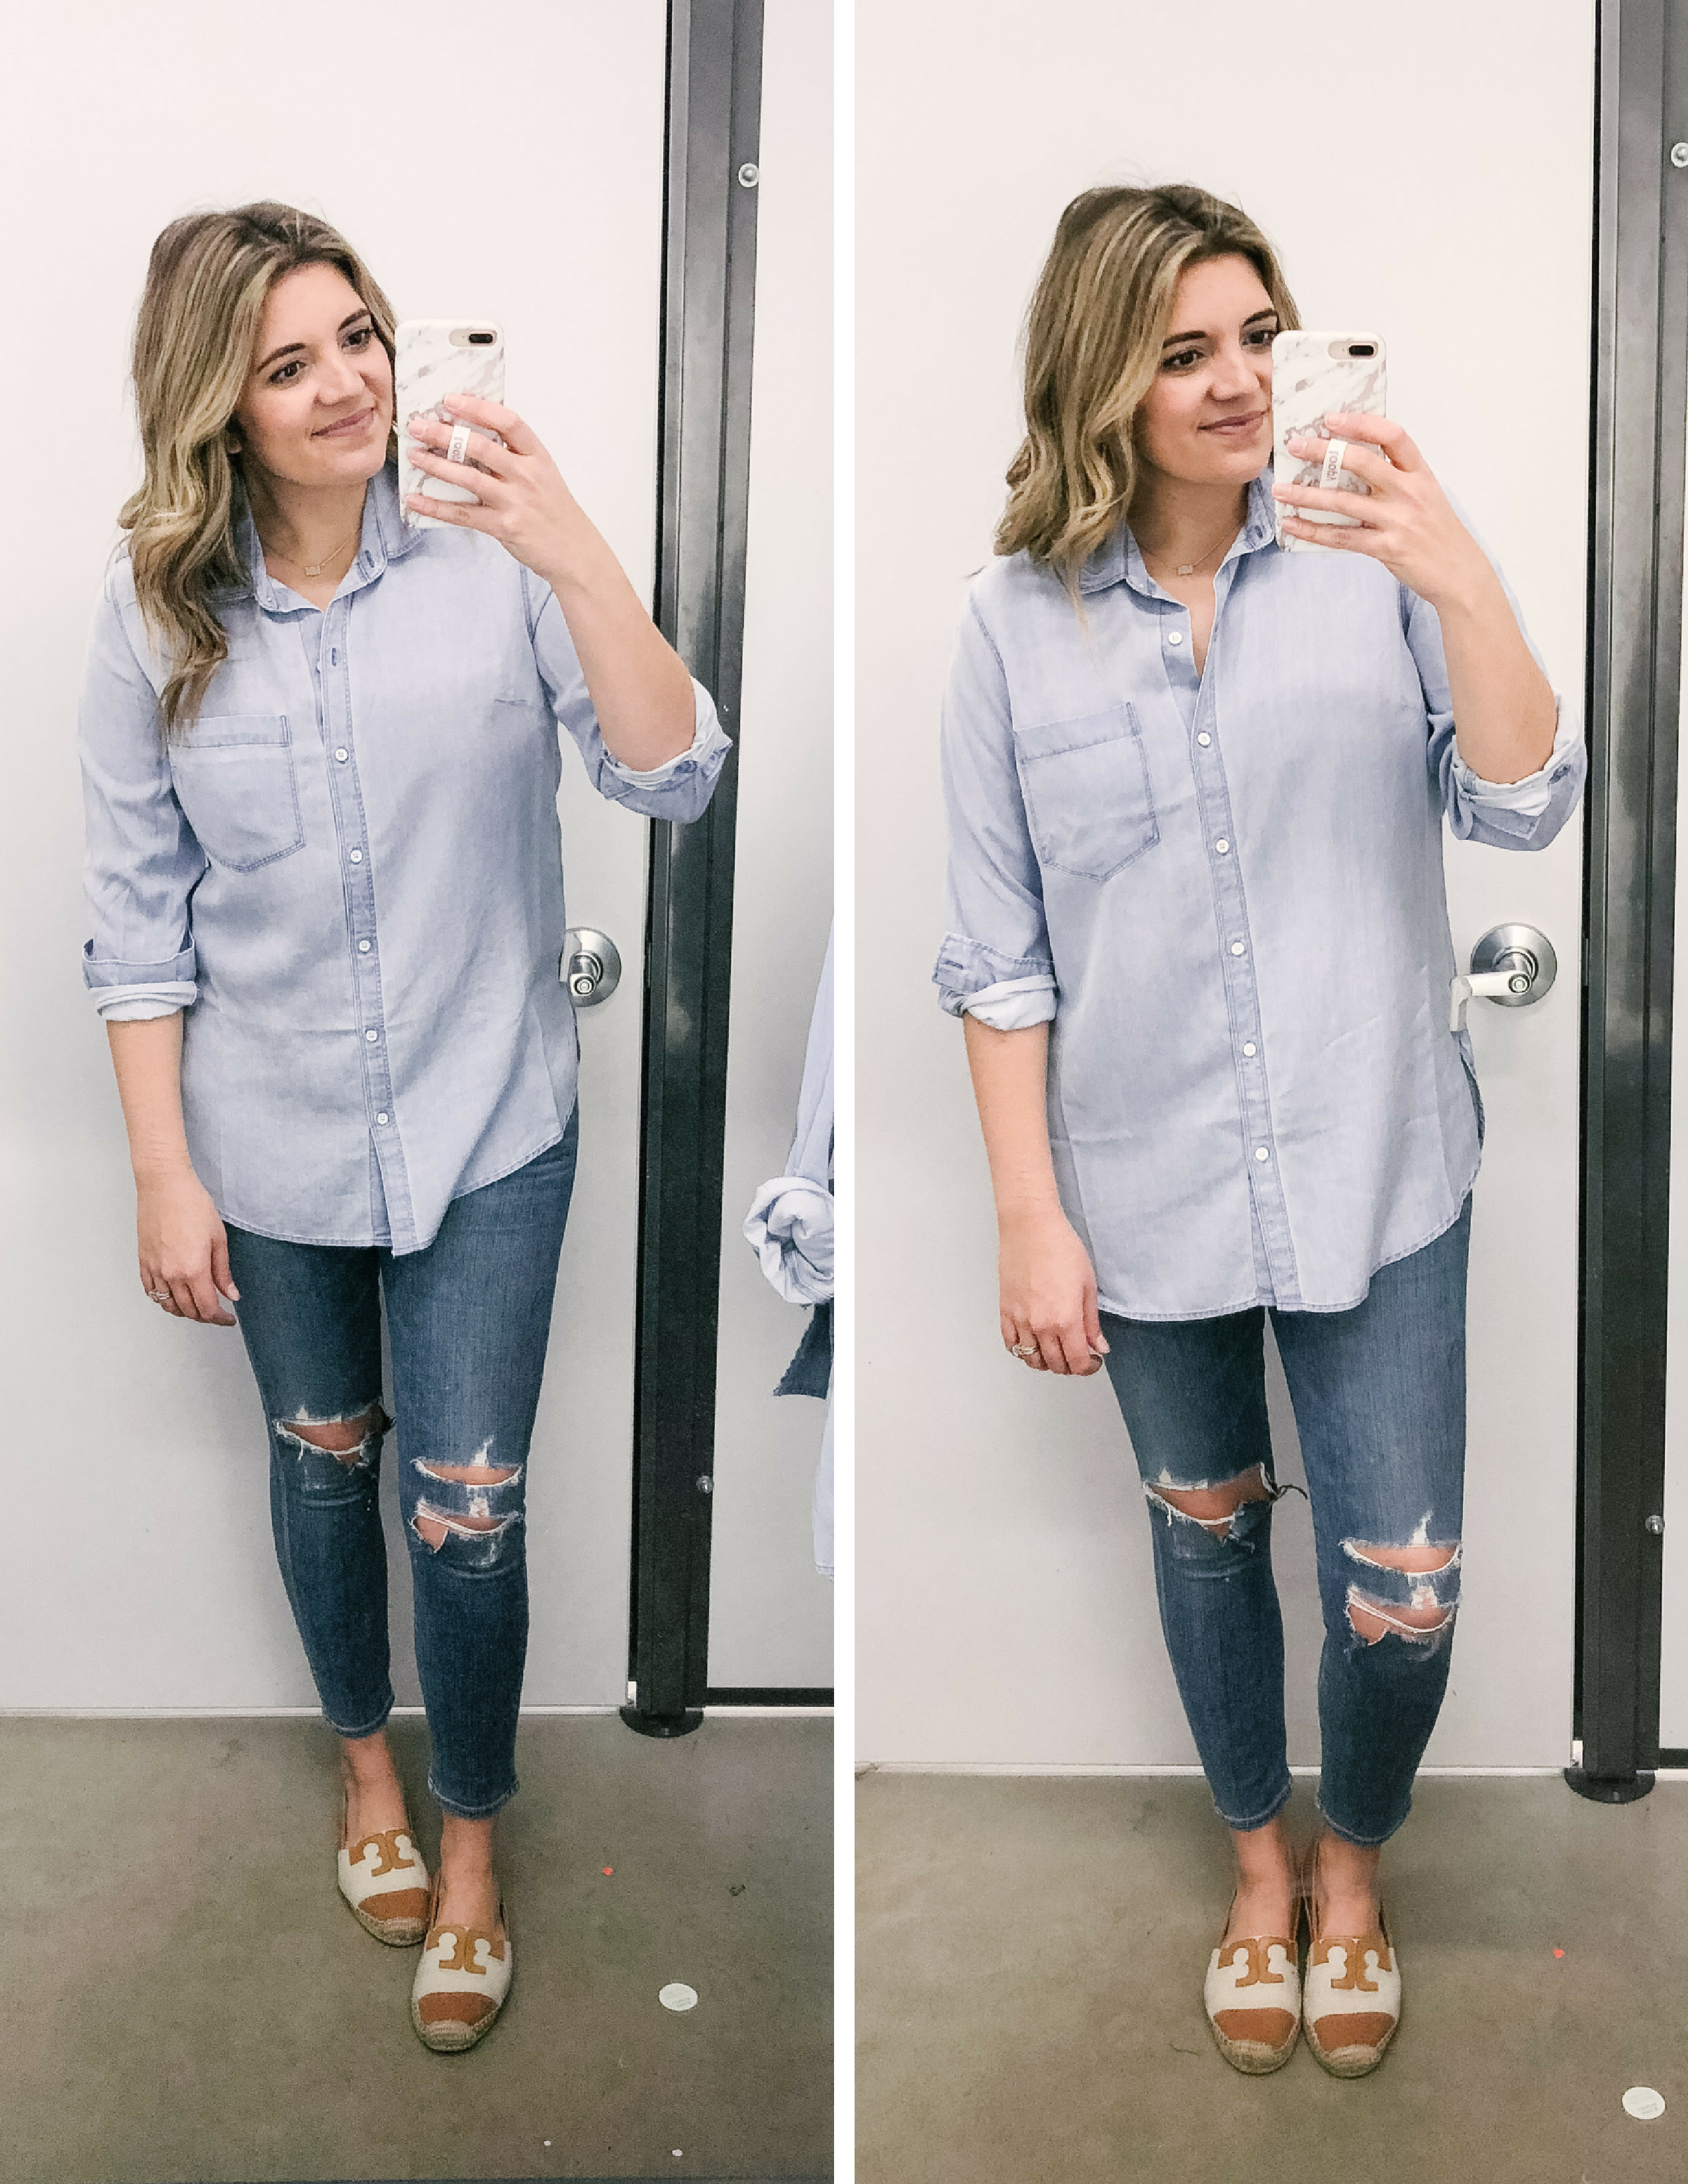 346651cb Old Navy chambray top review - dressing room reviews | See the full try-on